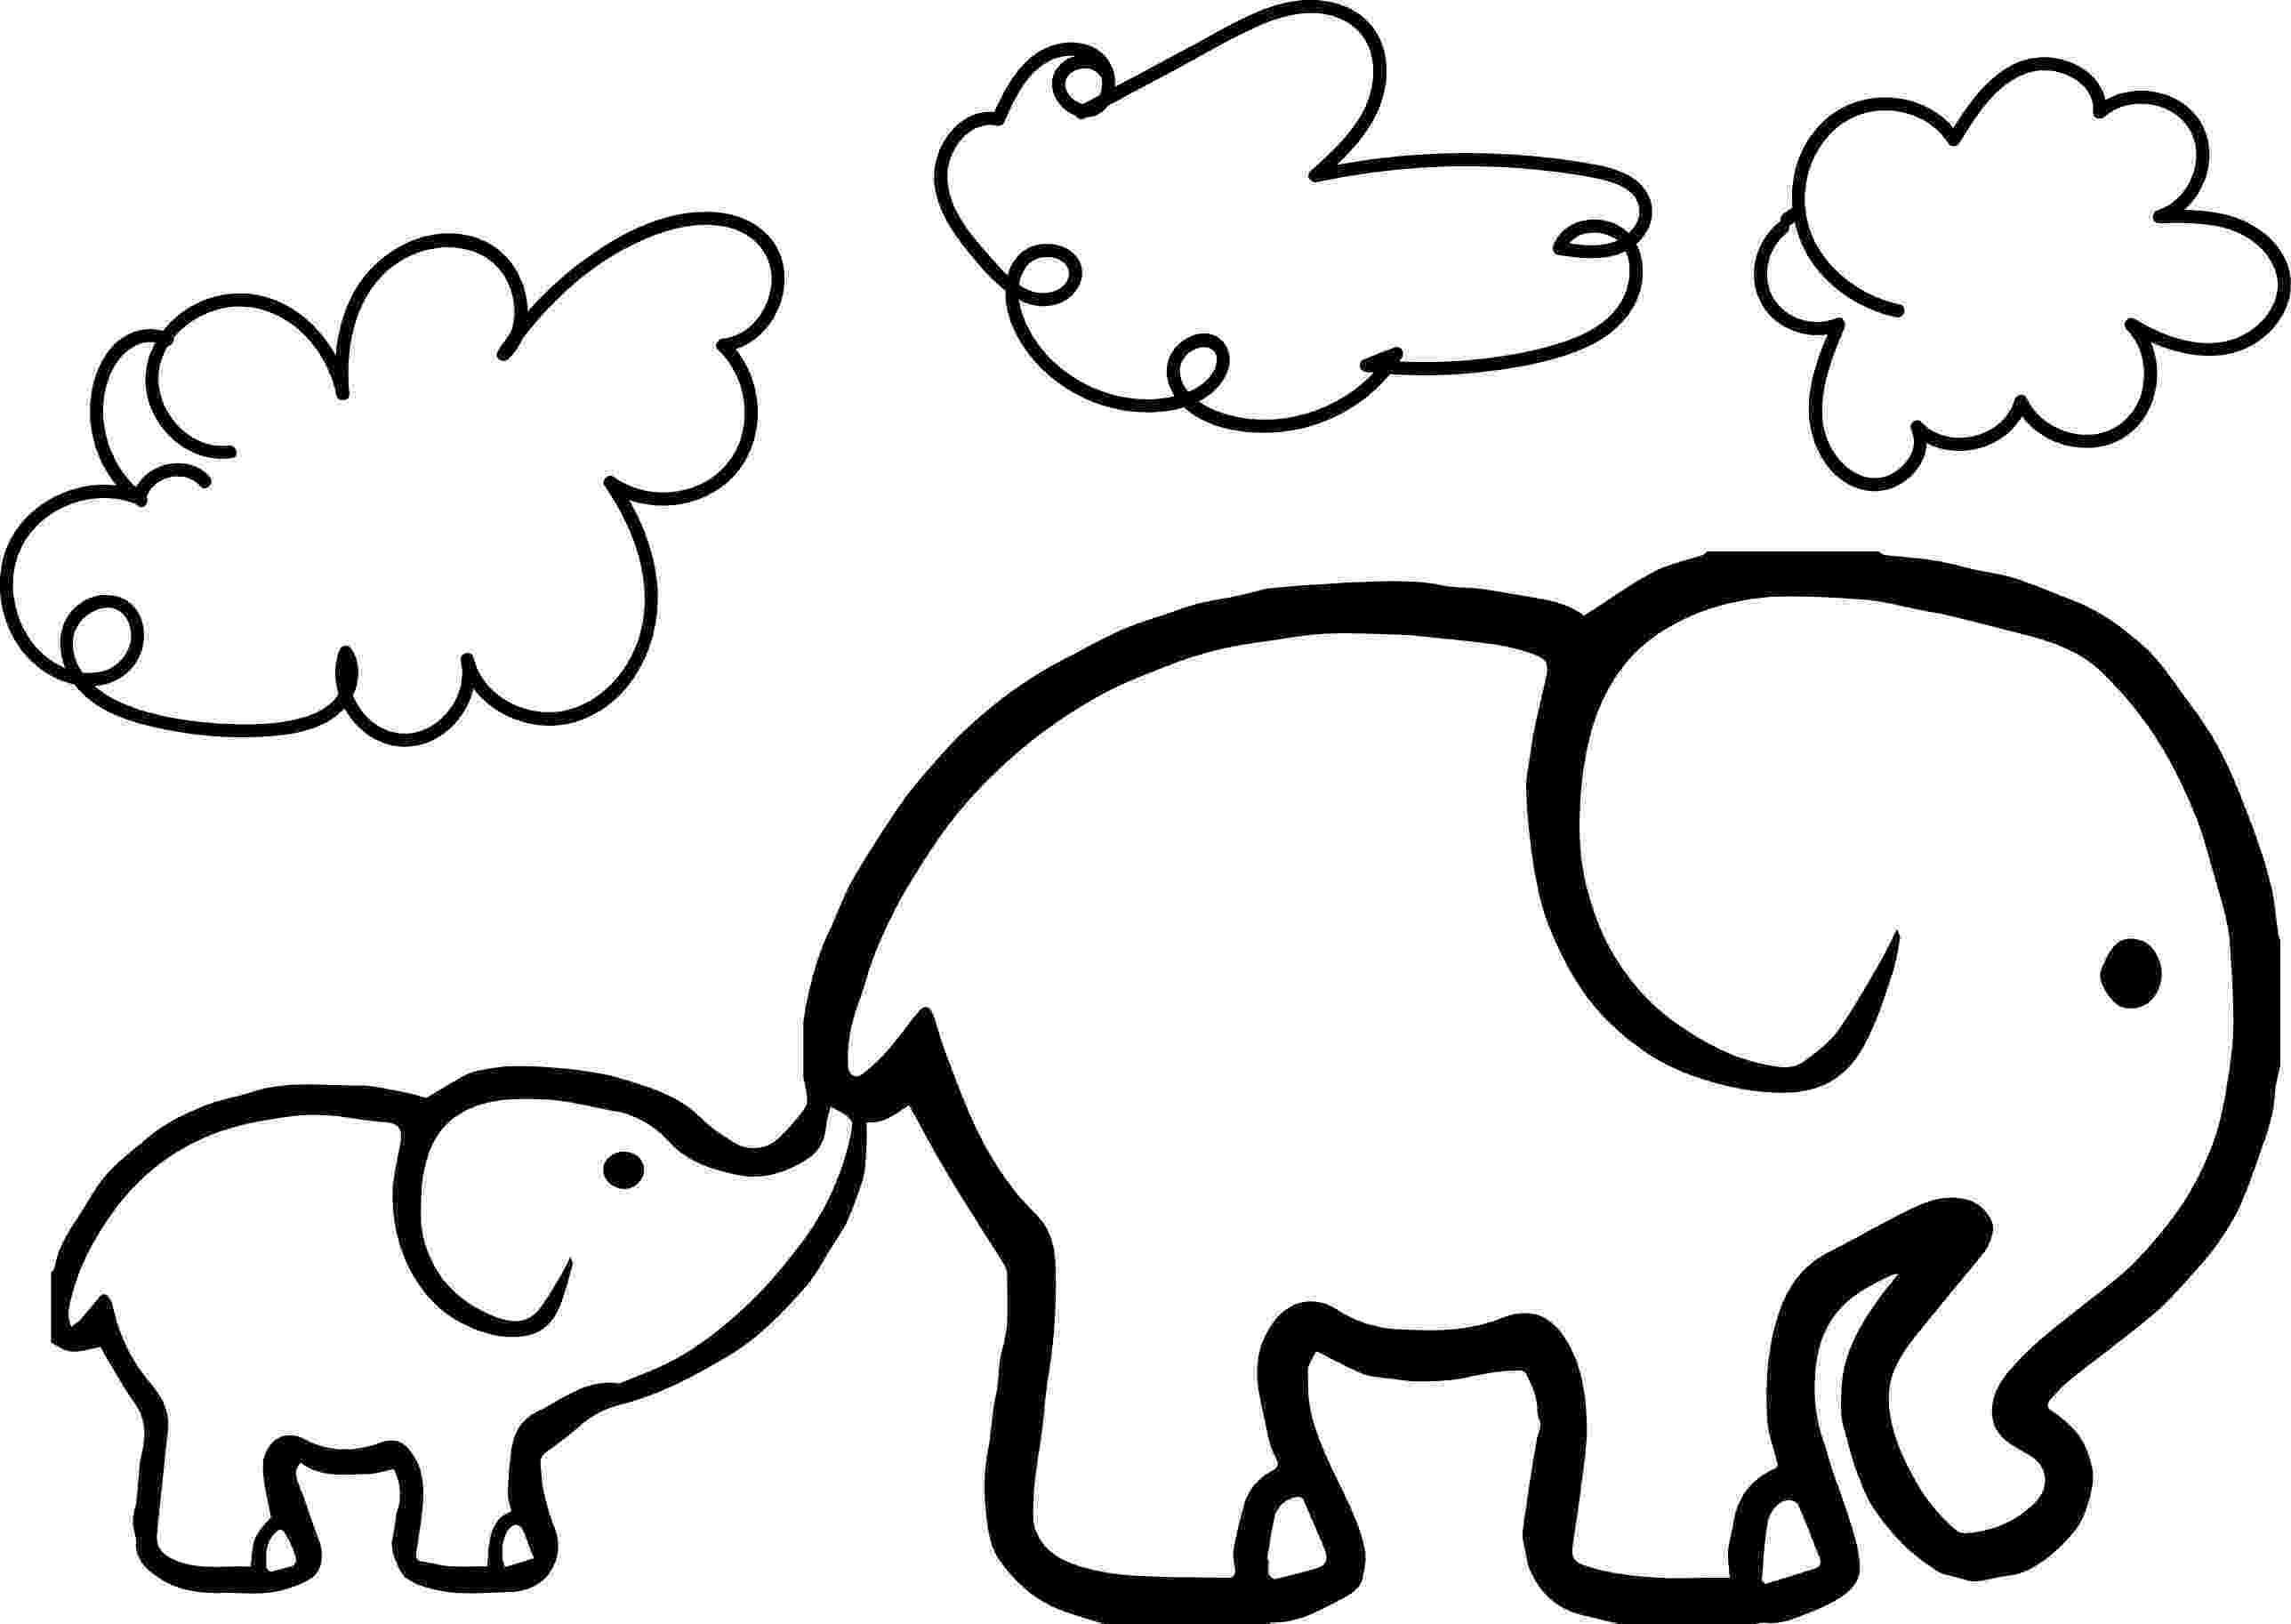 elephant images for colouring elephant coloring pages free download on clipartmag elephant for colouring images